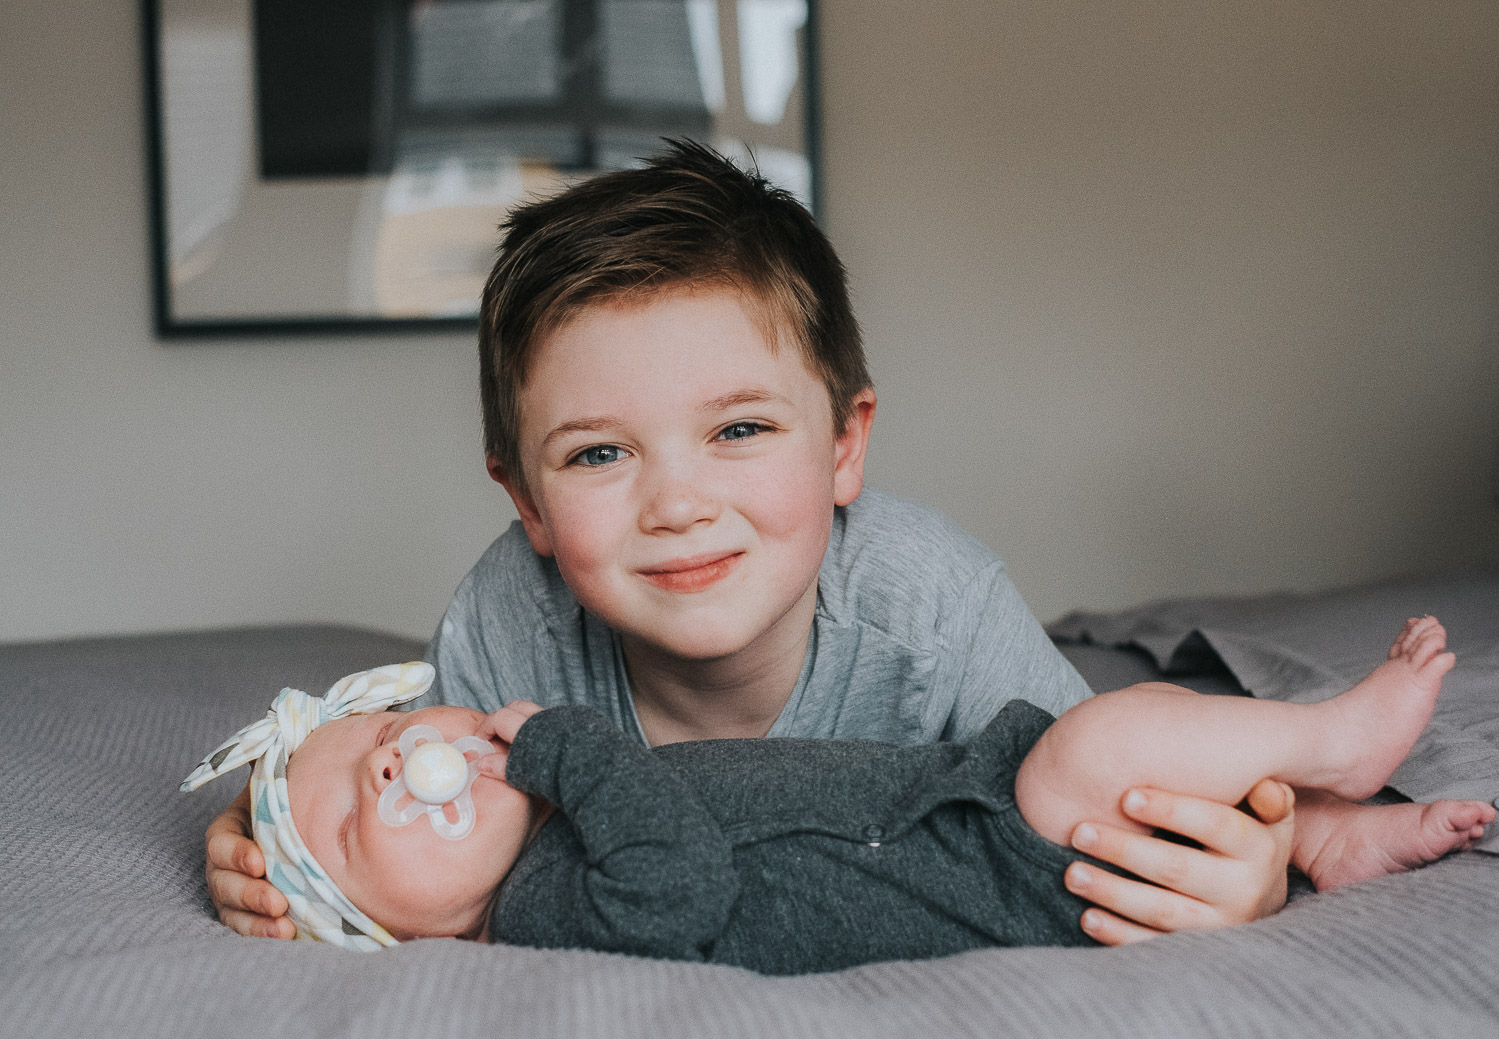 SAME SEX FAMILY PHOTOGRAPHY NEWBORN BABY WITH OLDER BROTHER